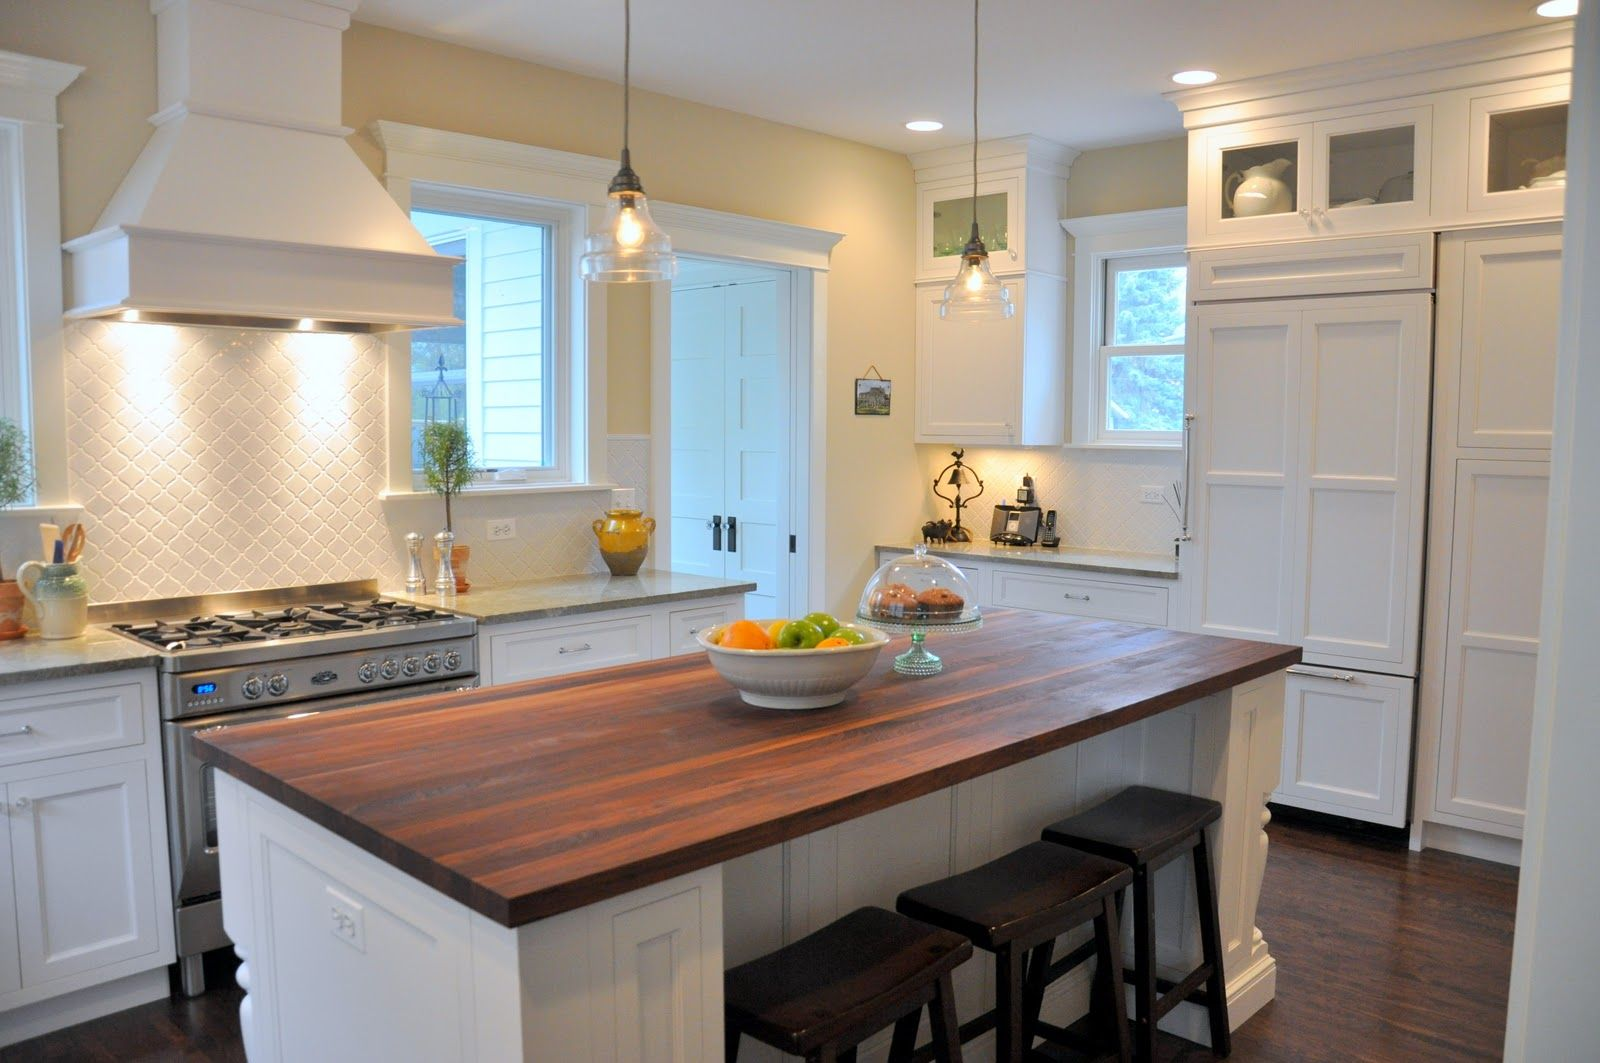 Cozy White And Yellow Kitchen With Pretty Wood Trim, Small Glass Doors,  Tiled Back